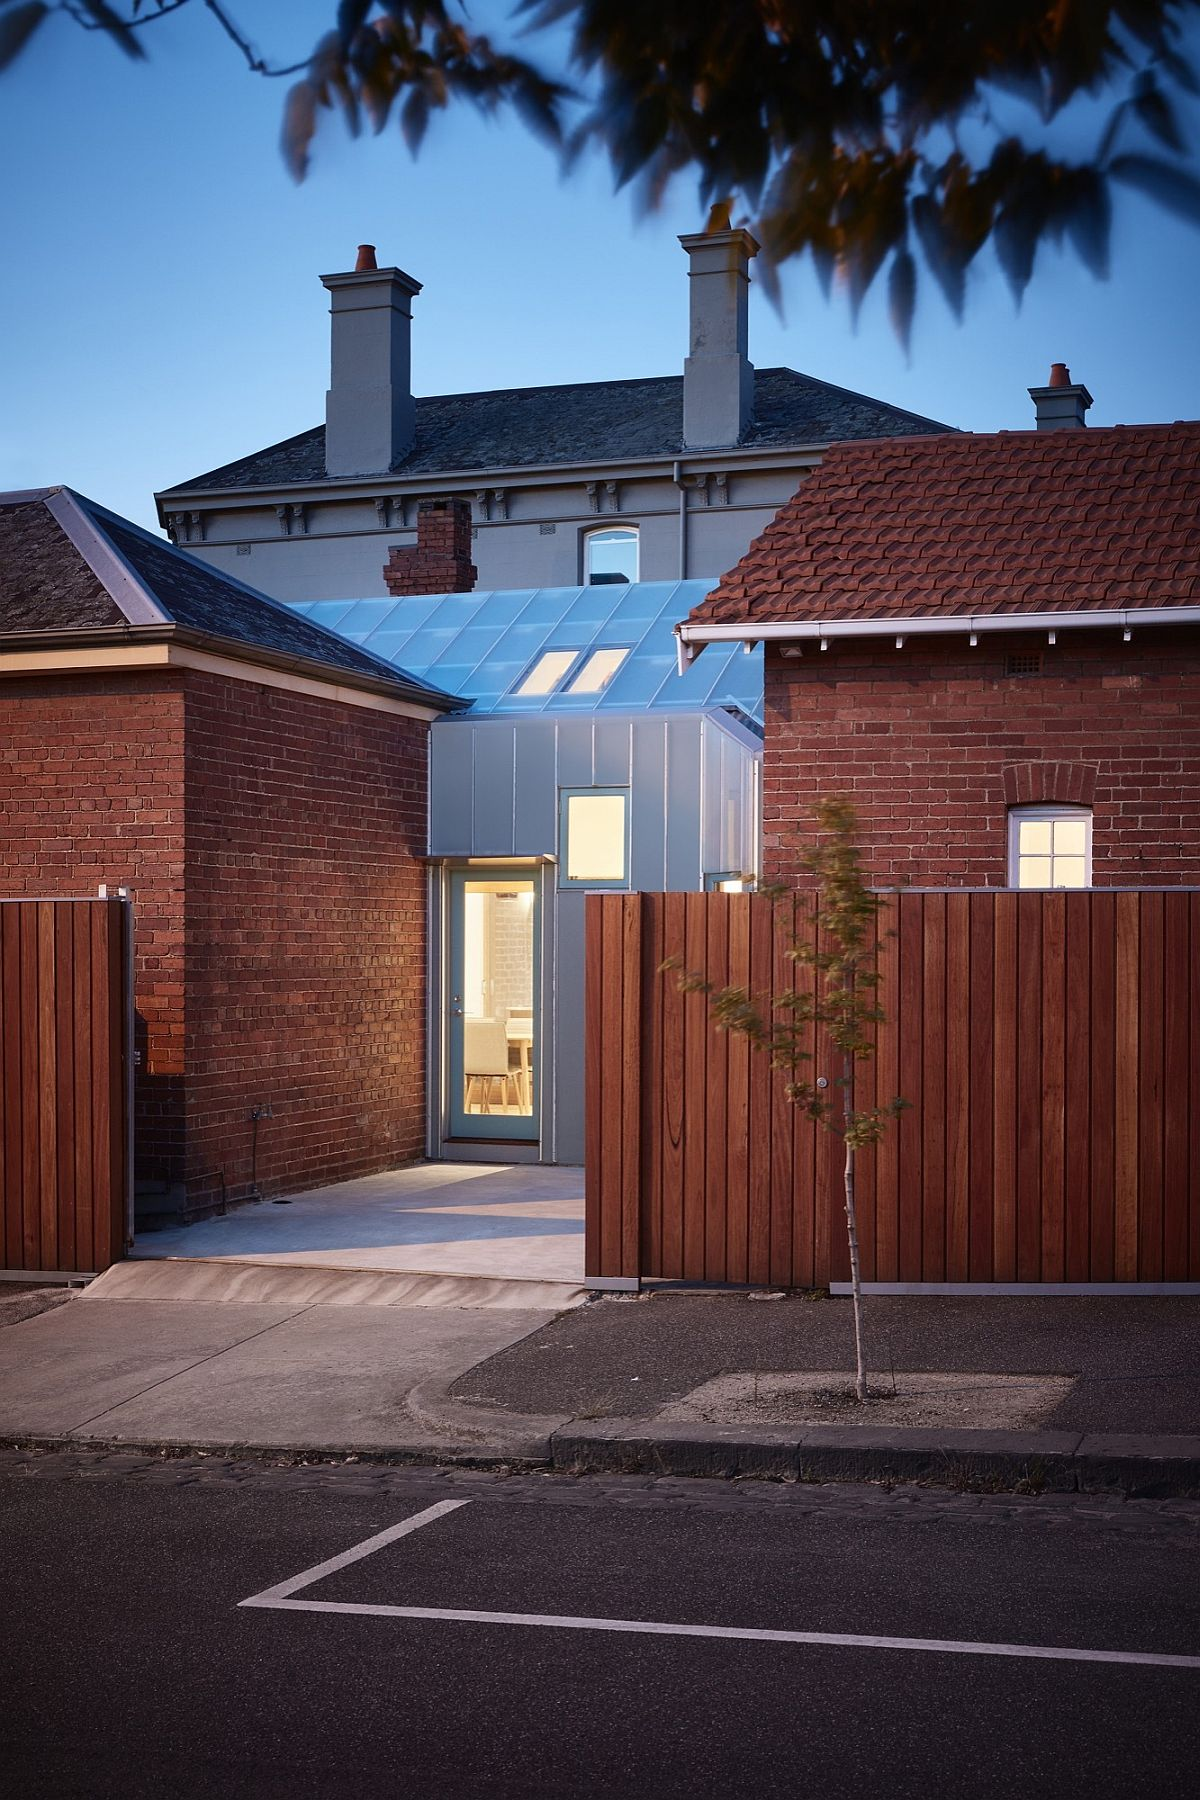 Modern addition to the classic Mebourne home gives it a unique facade